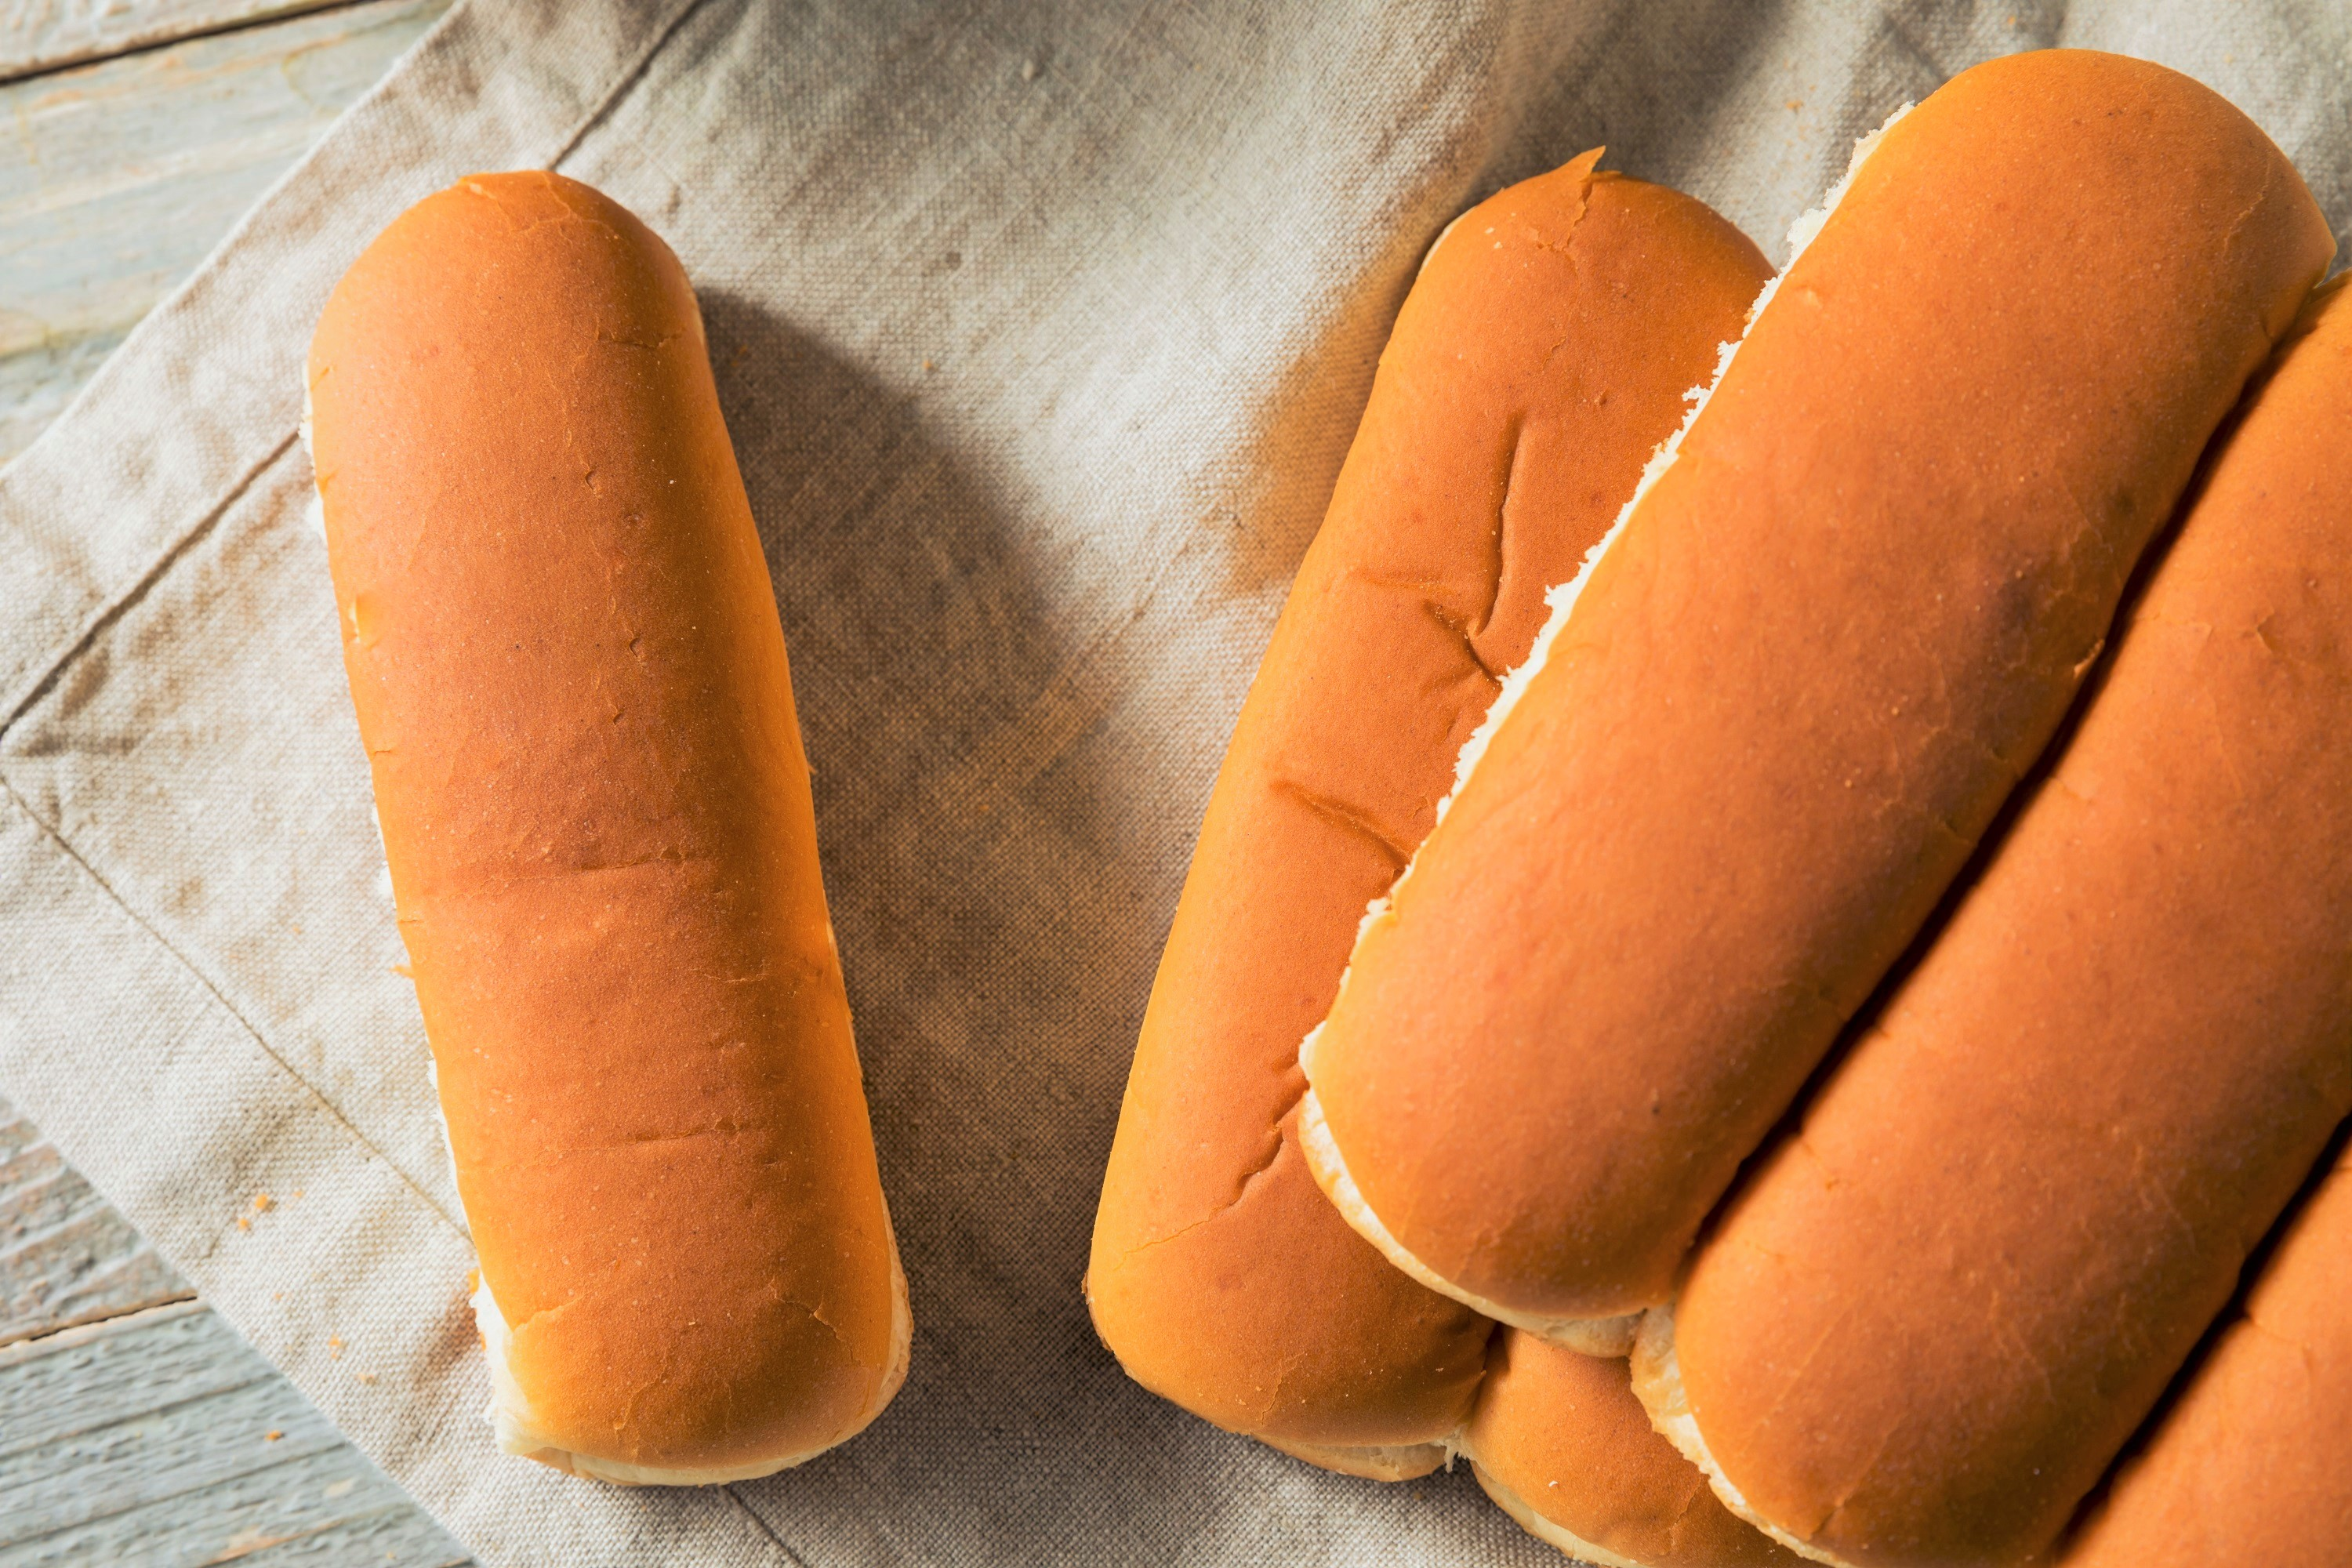 Hot Dog Buns Sold at Aldi, Walmart, and Other Grocers Recalled for Choking Hazard